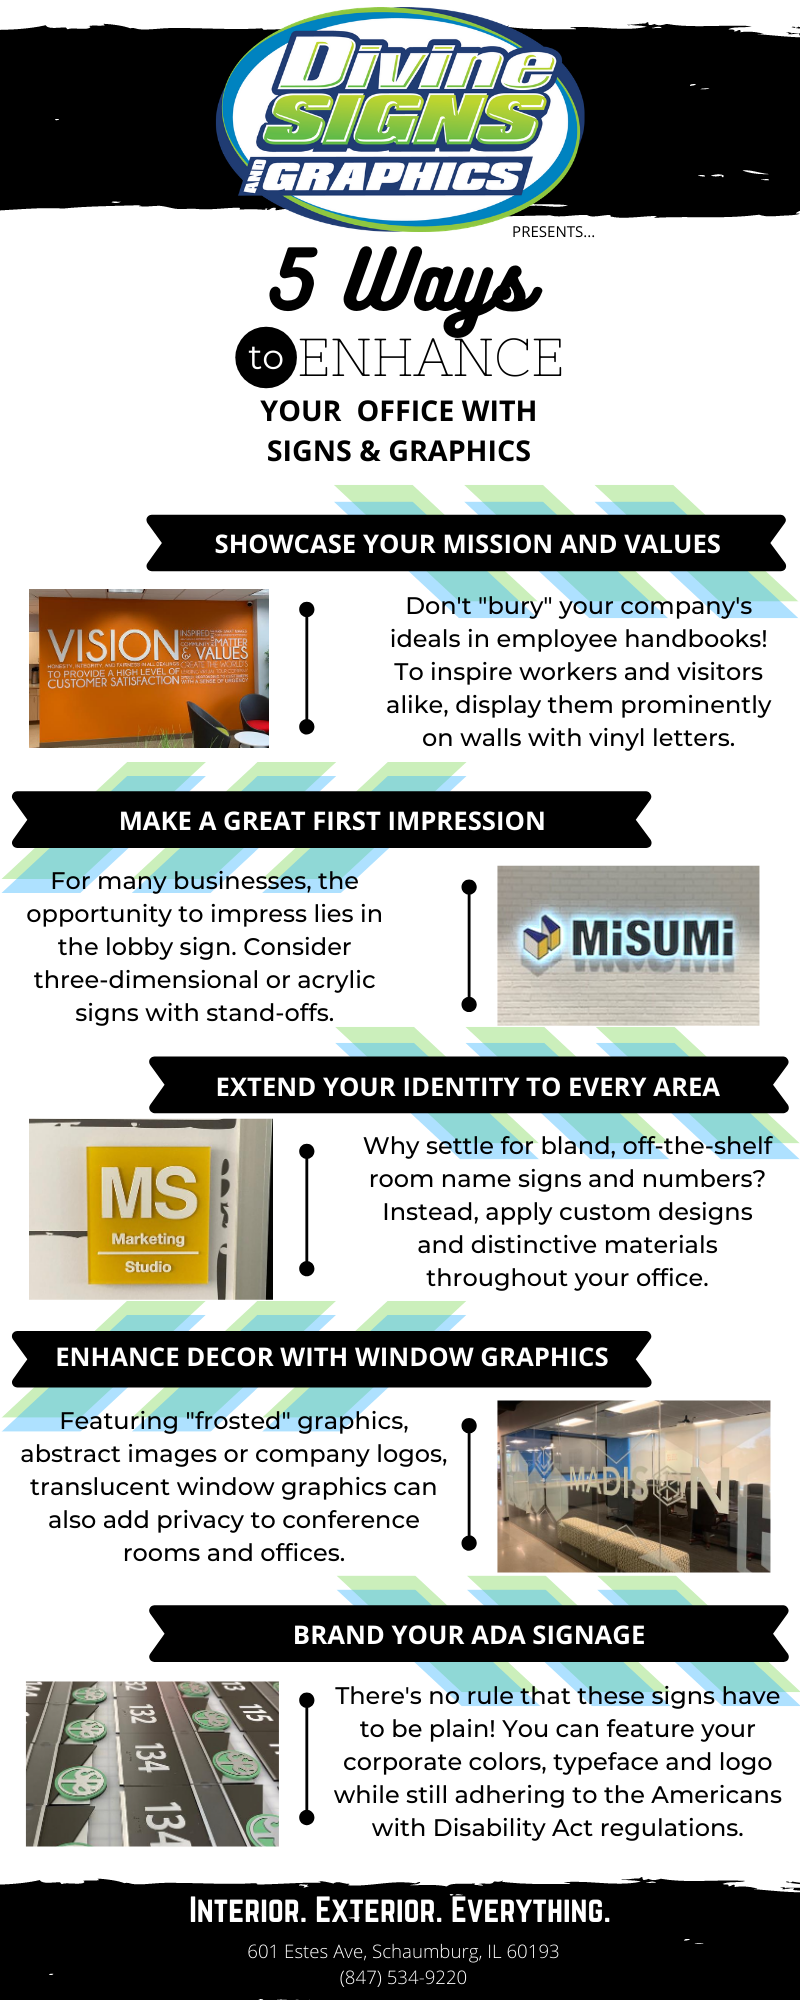 5 Ways to Enhance Your Office With Signs and Graphics